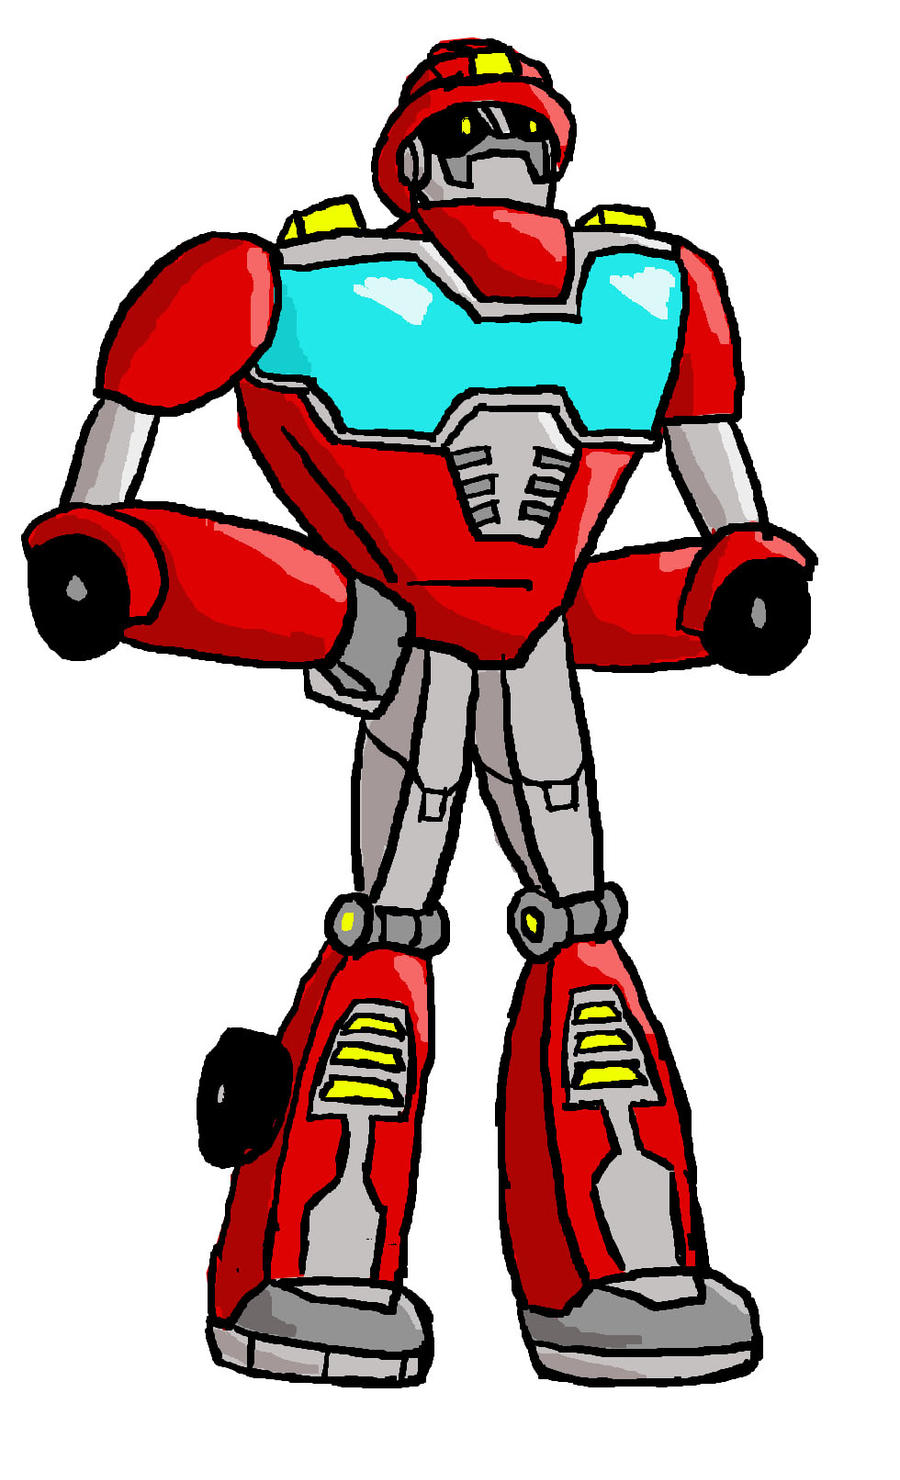 Heatwave From Rescue Bots By Charonthesabercat On Deviantart